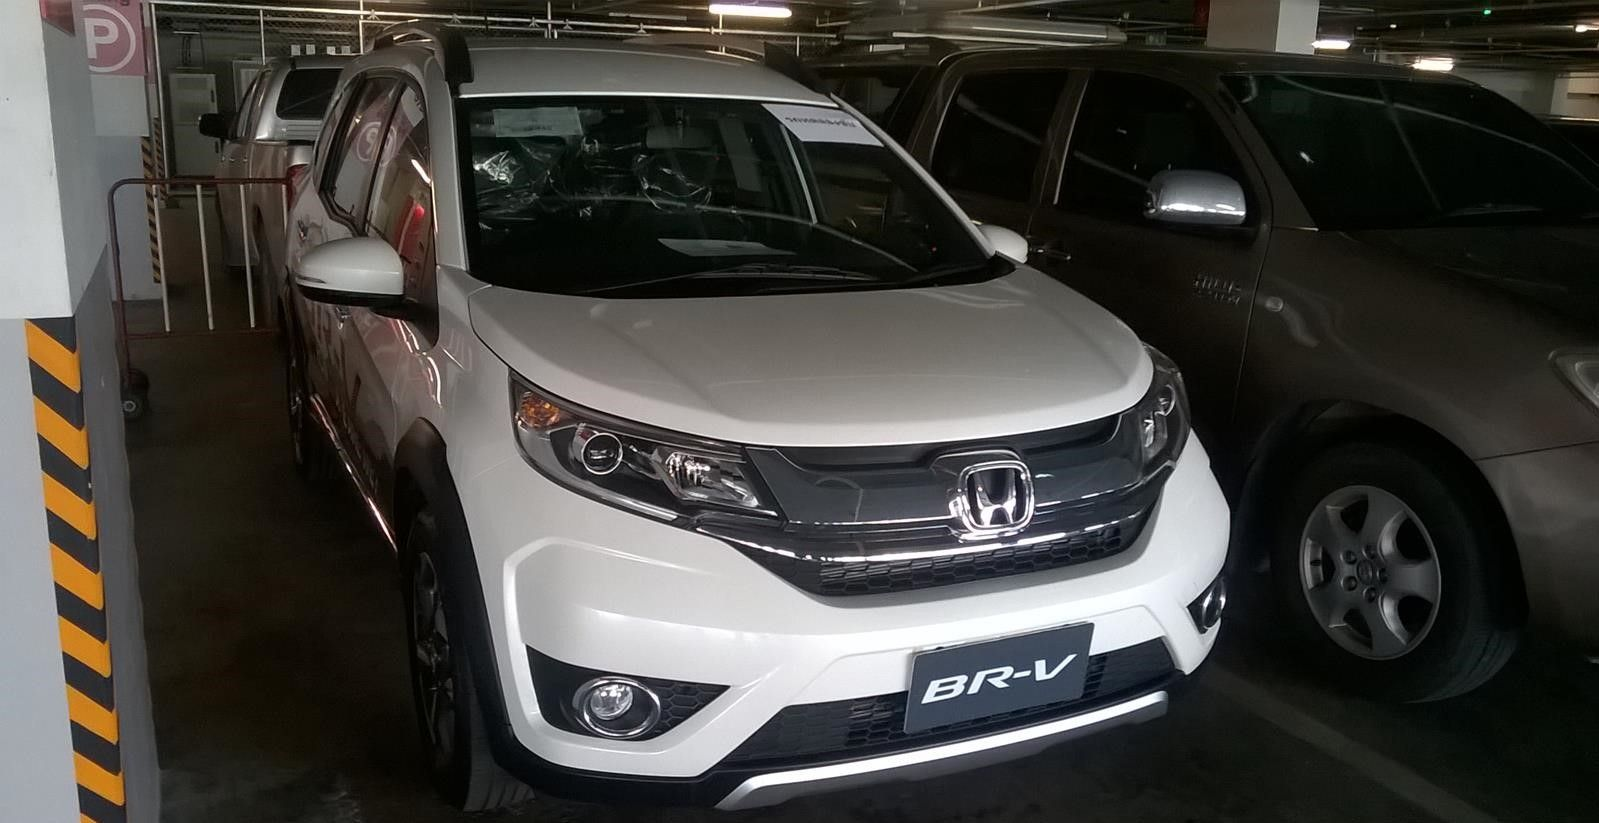 Honda Brv 2017 Prices In Pakistan Pictures And Reviews Pakwheels Honda Pakistan Pictures Suv